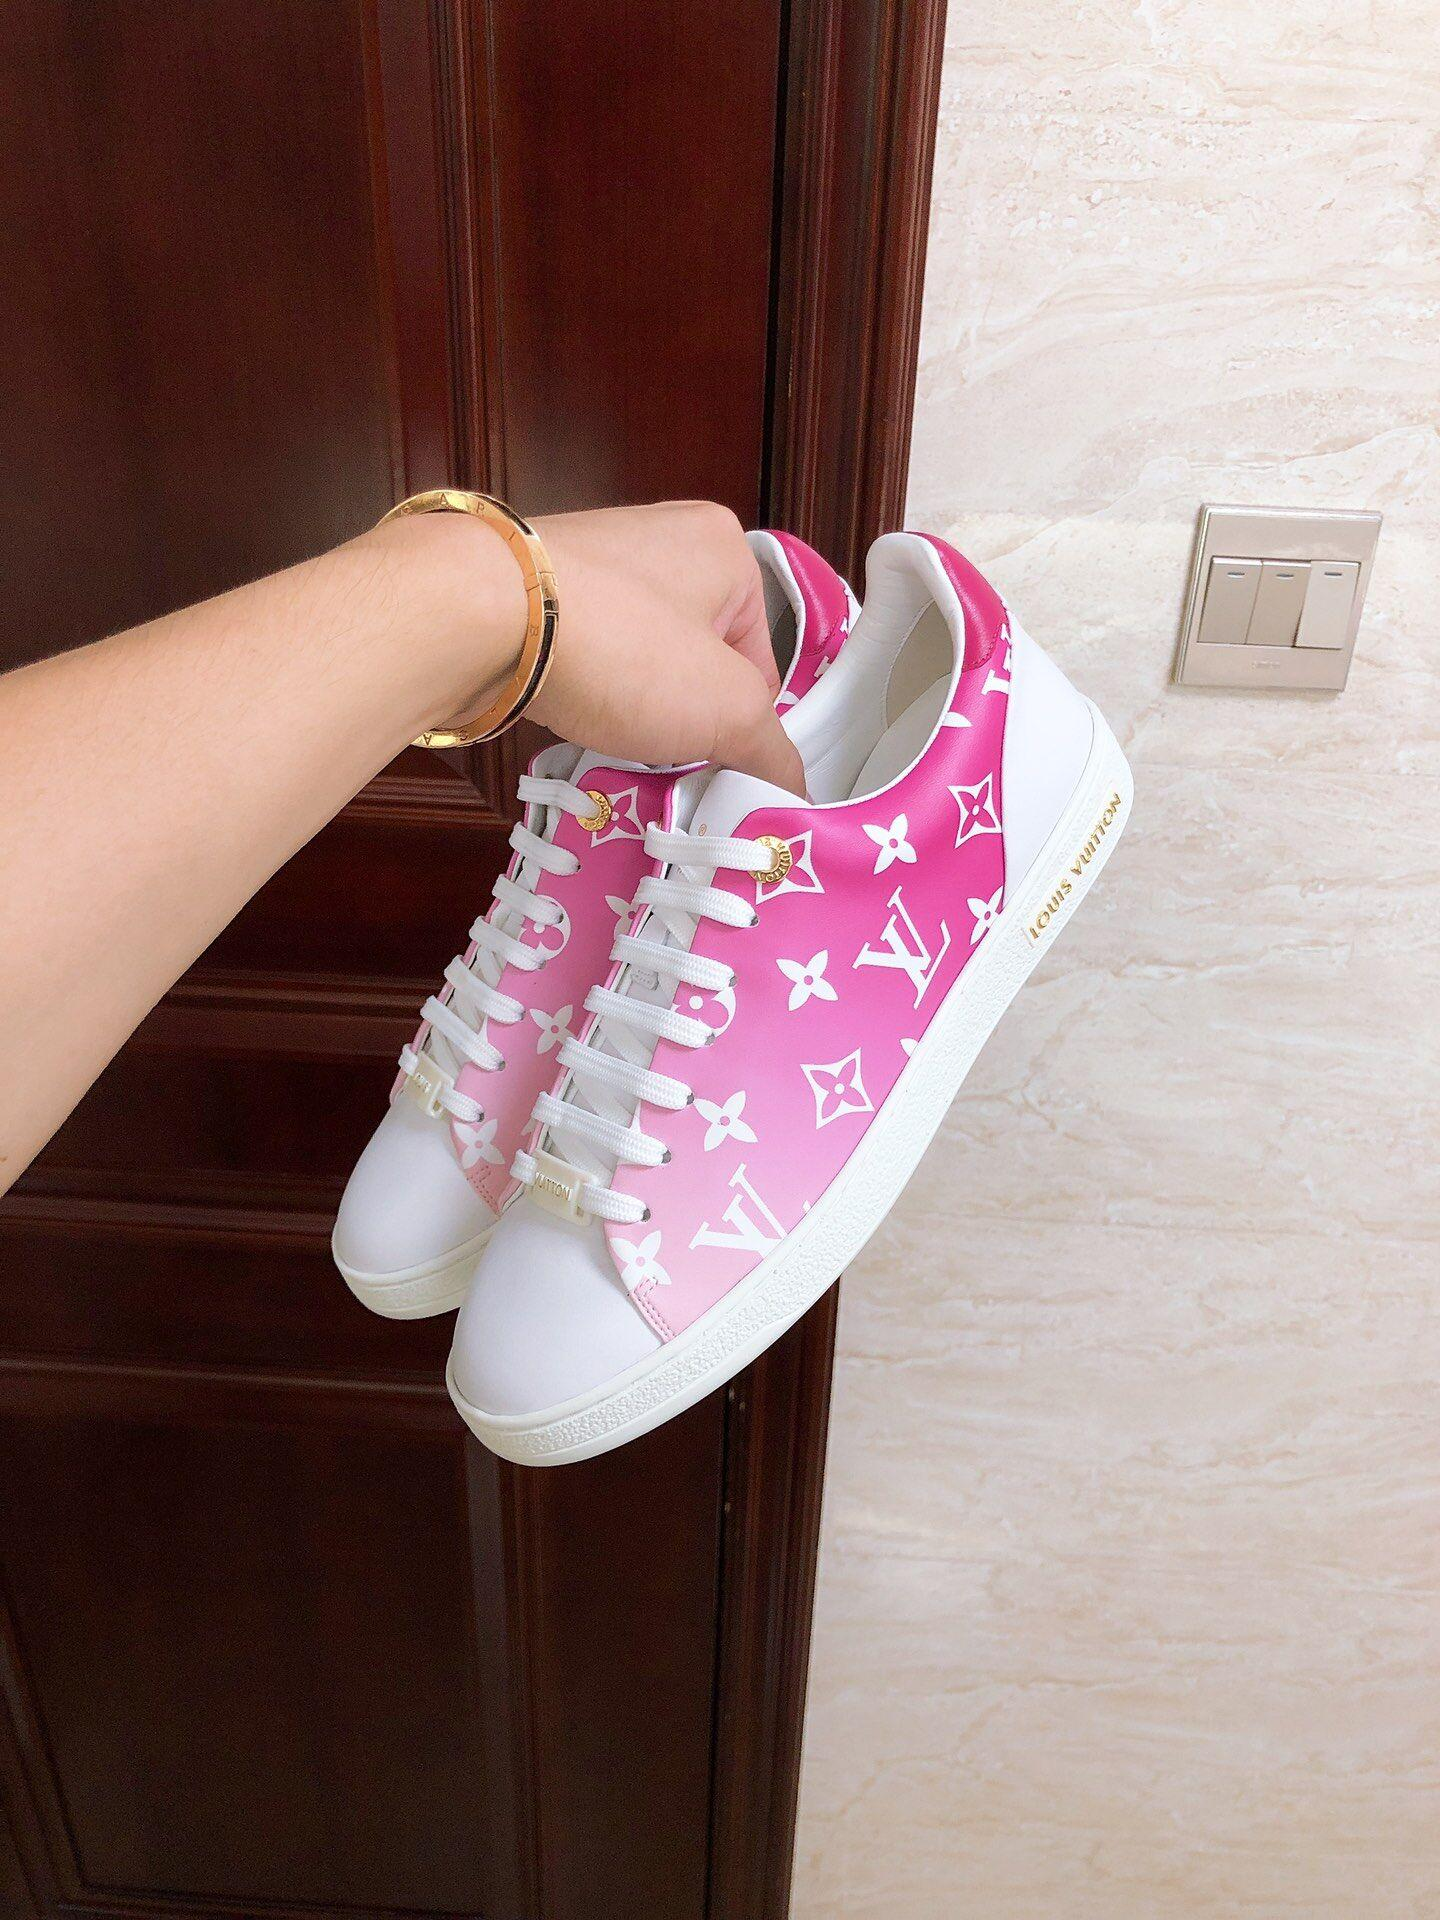 frontrow sneaker    sneaker    women shoes    pink  shoes 1A87CE  8